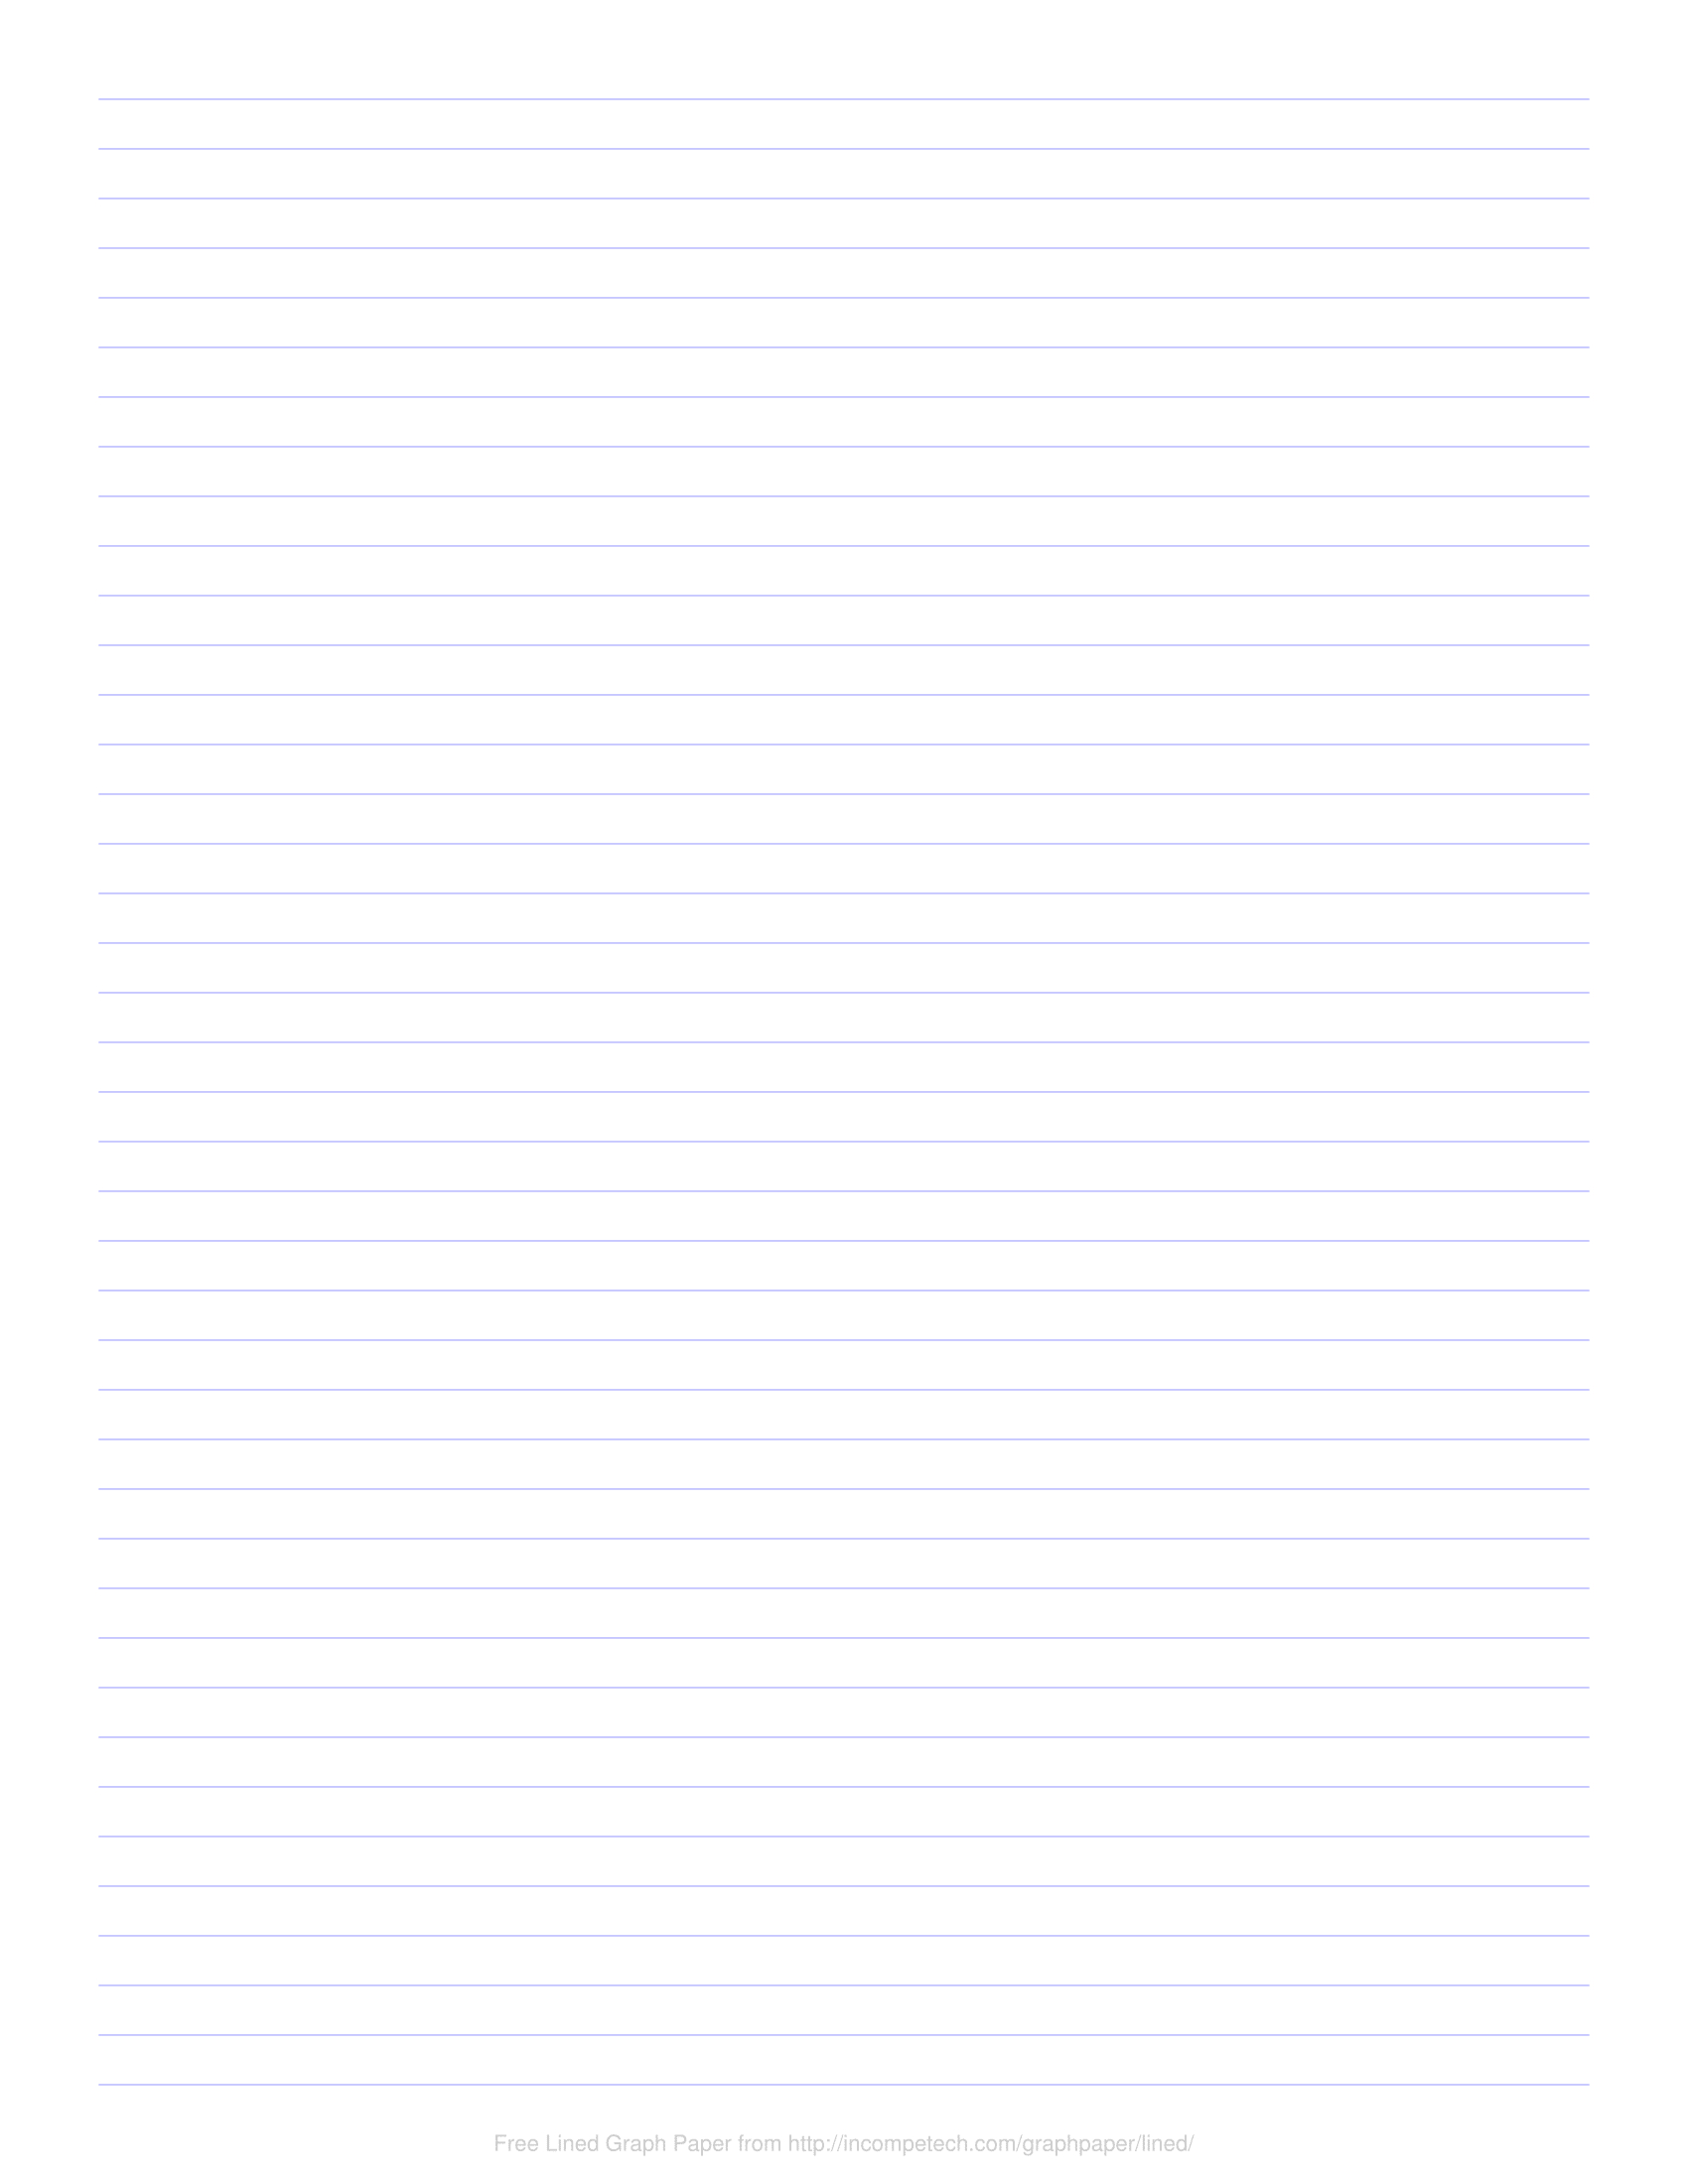 Free Online Graph Paper / Lined - Free Printable Binder Paper